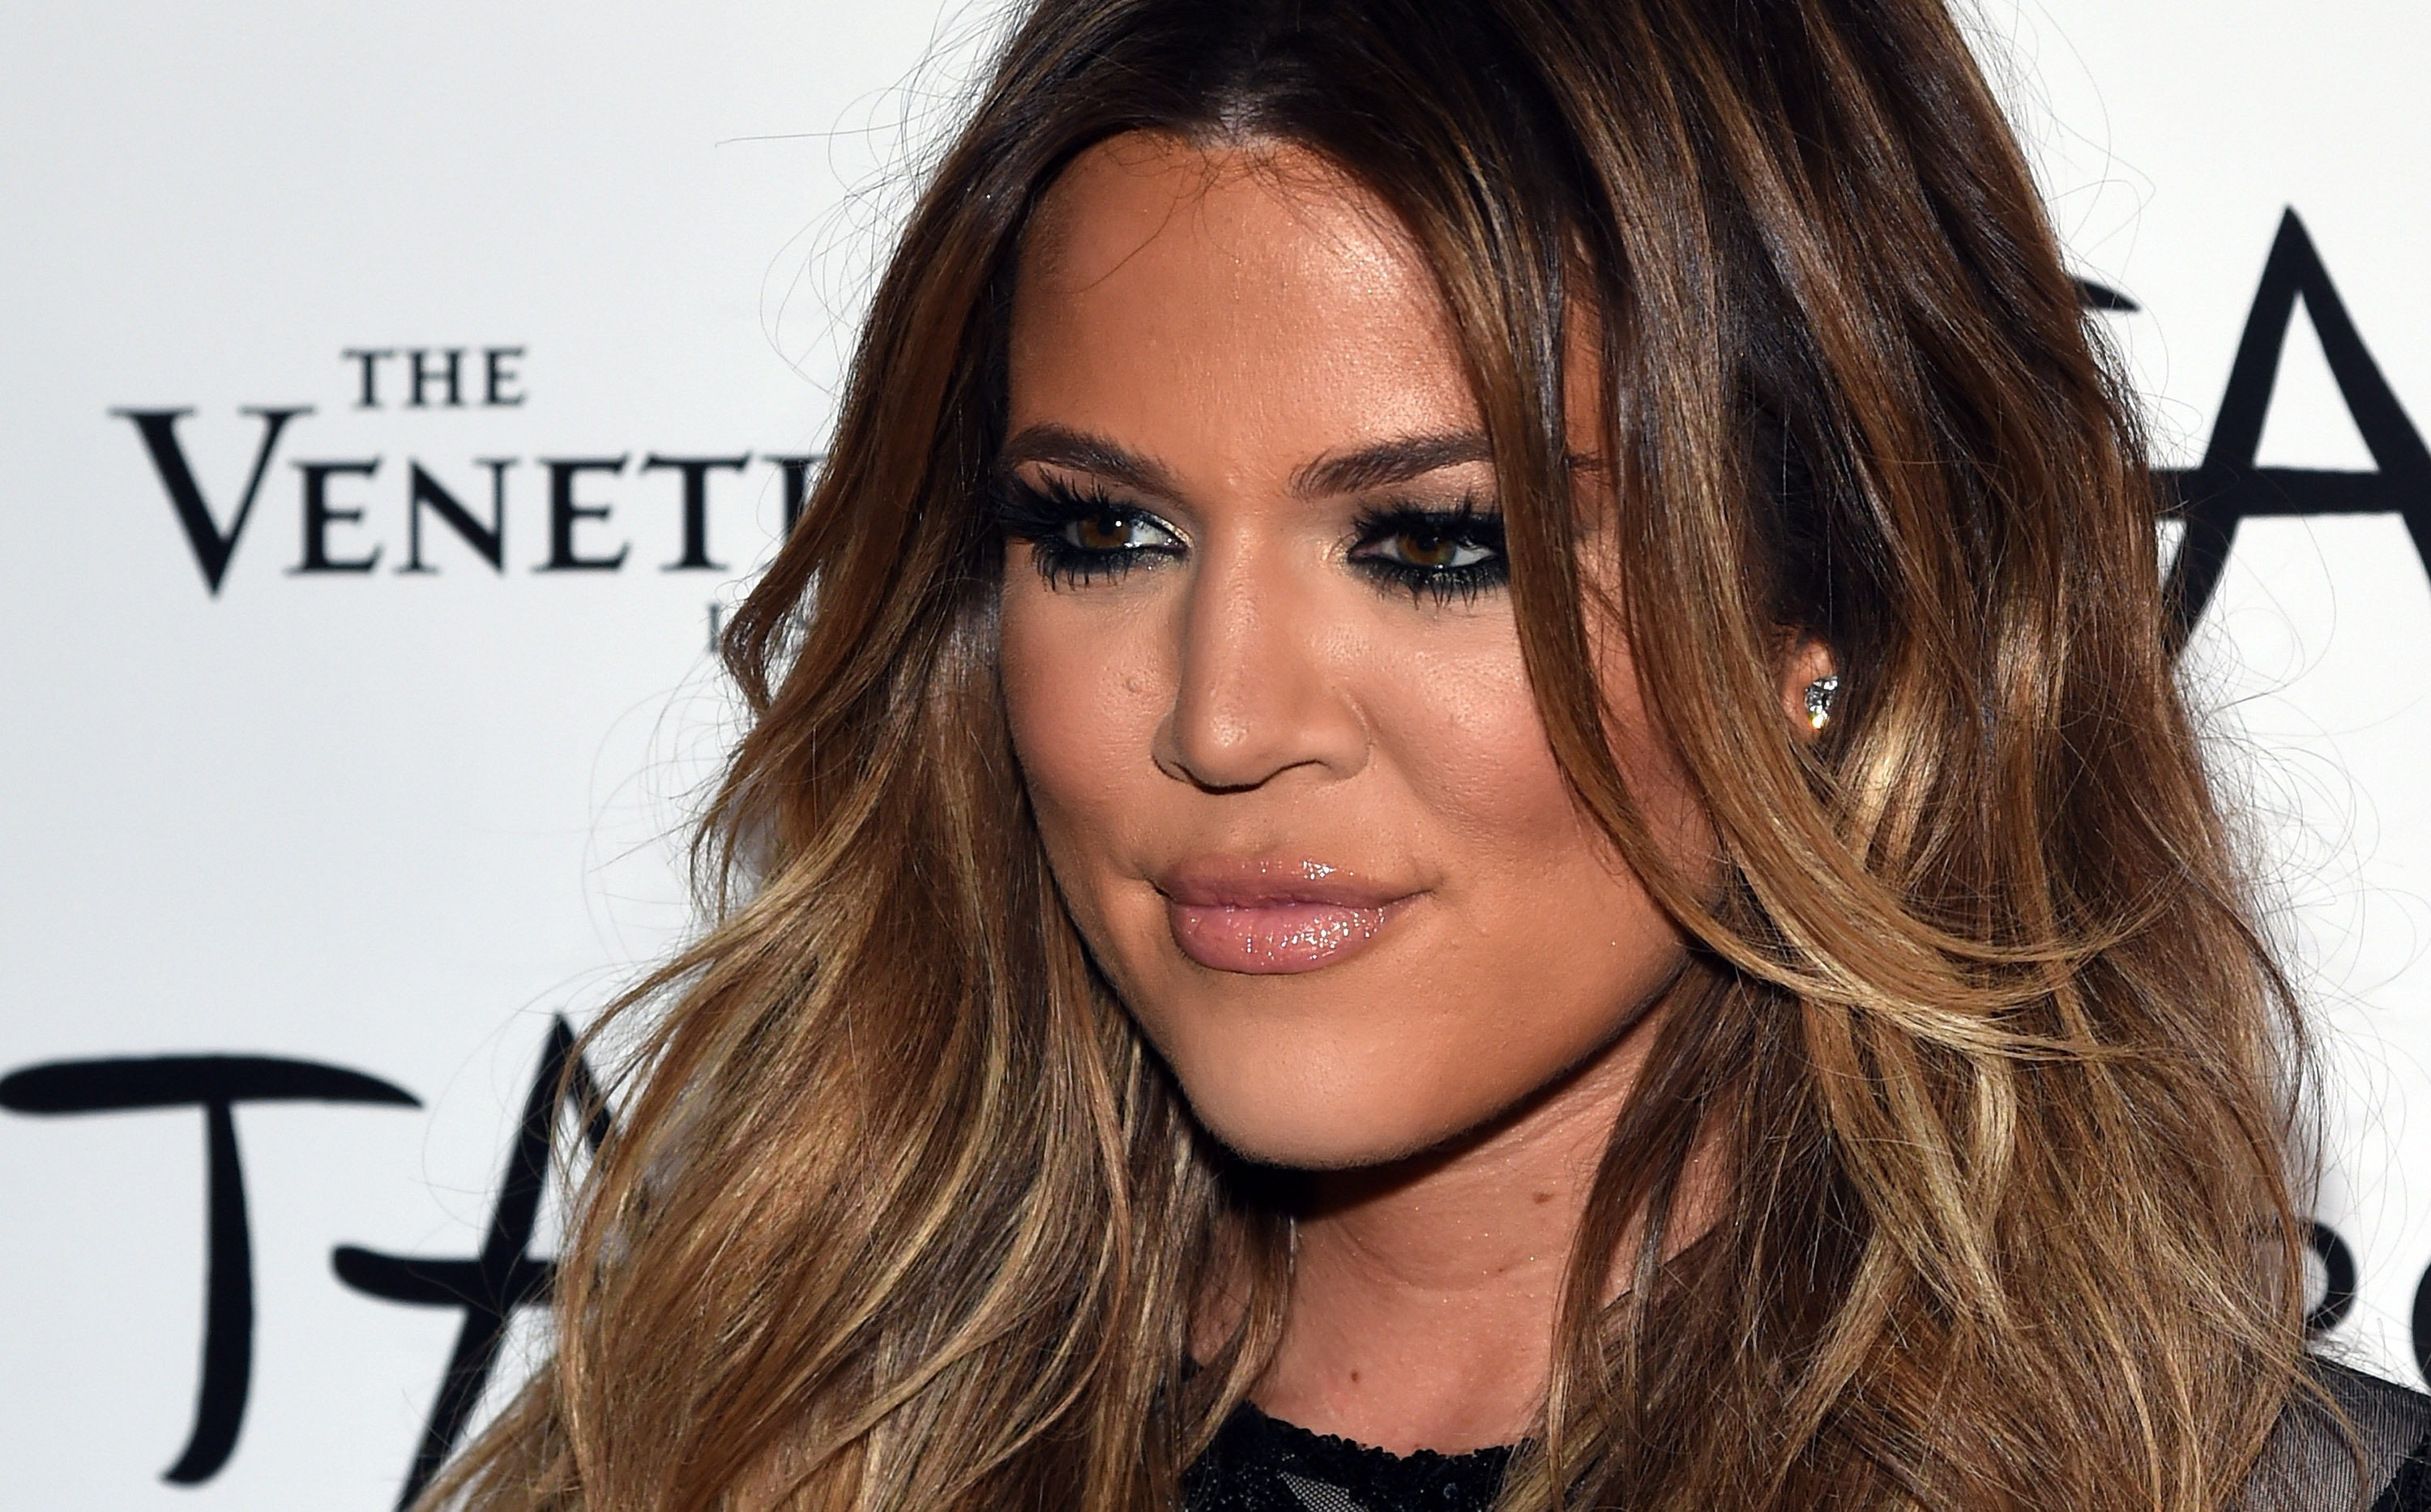 Khloe Kardashian Wallpapers HD Khloe Kardashian Hot Wallpapers